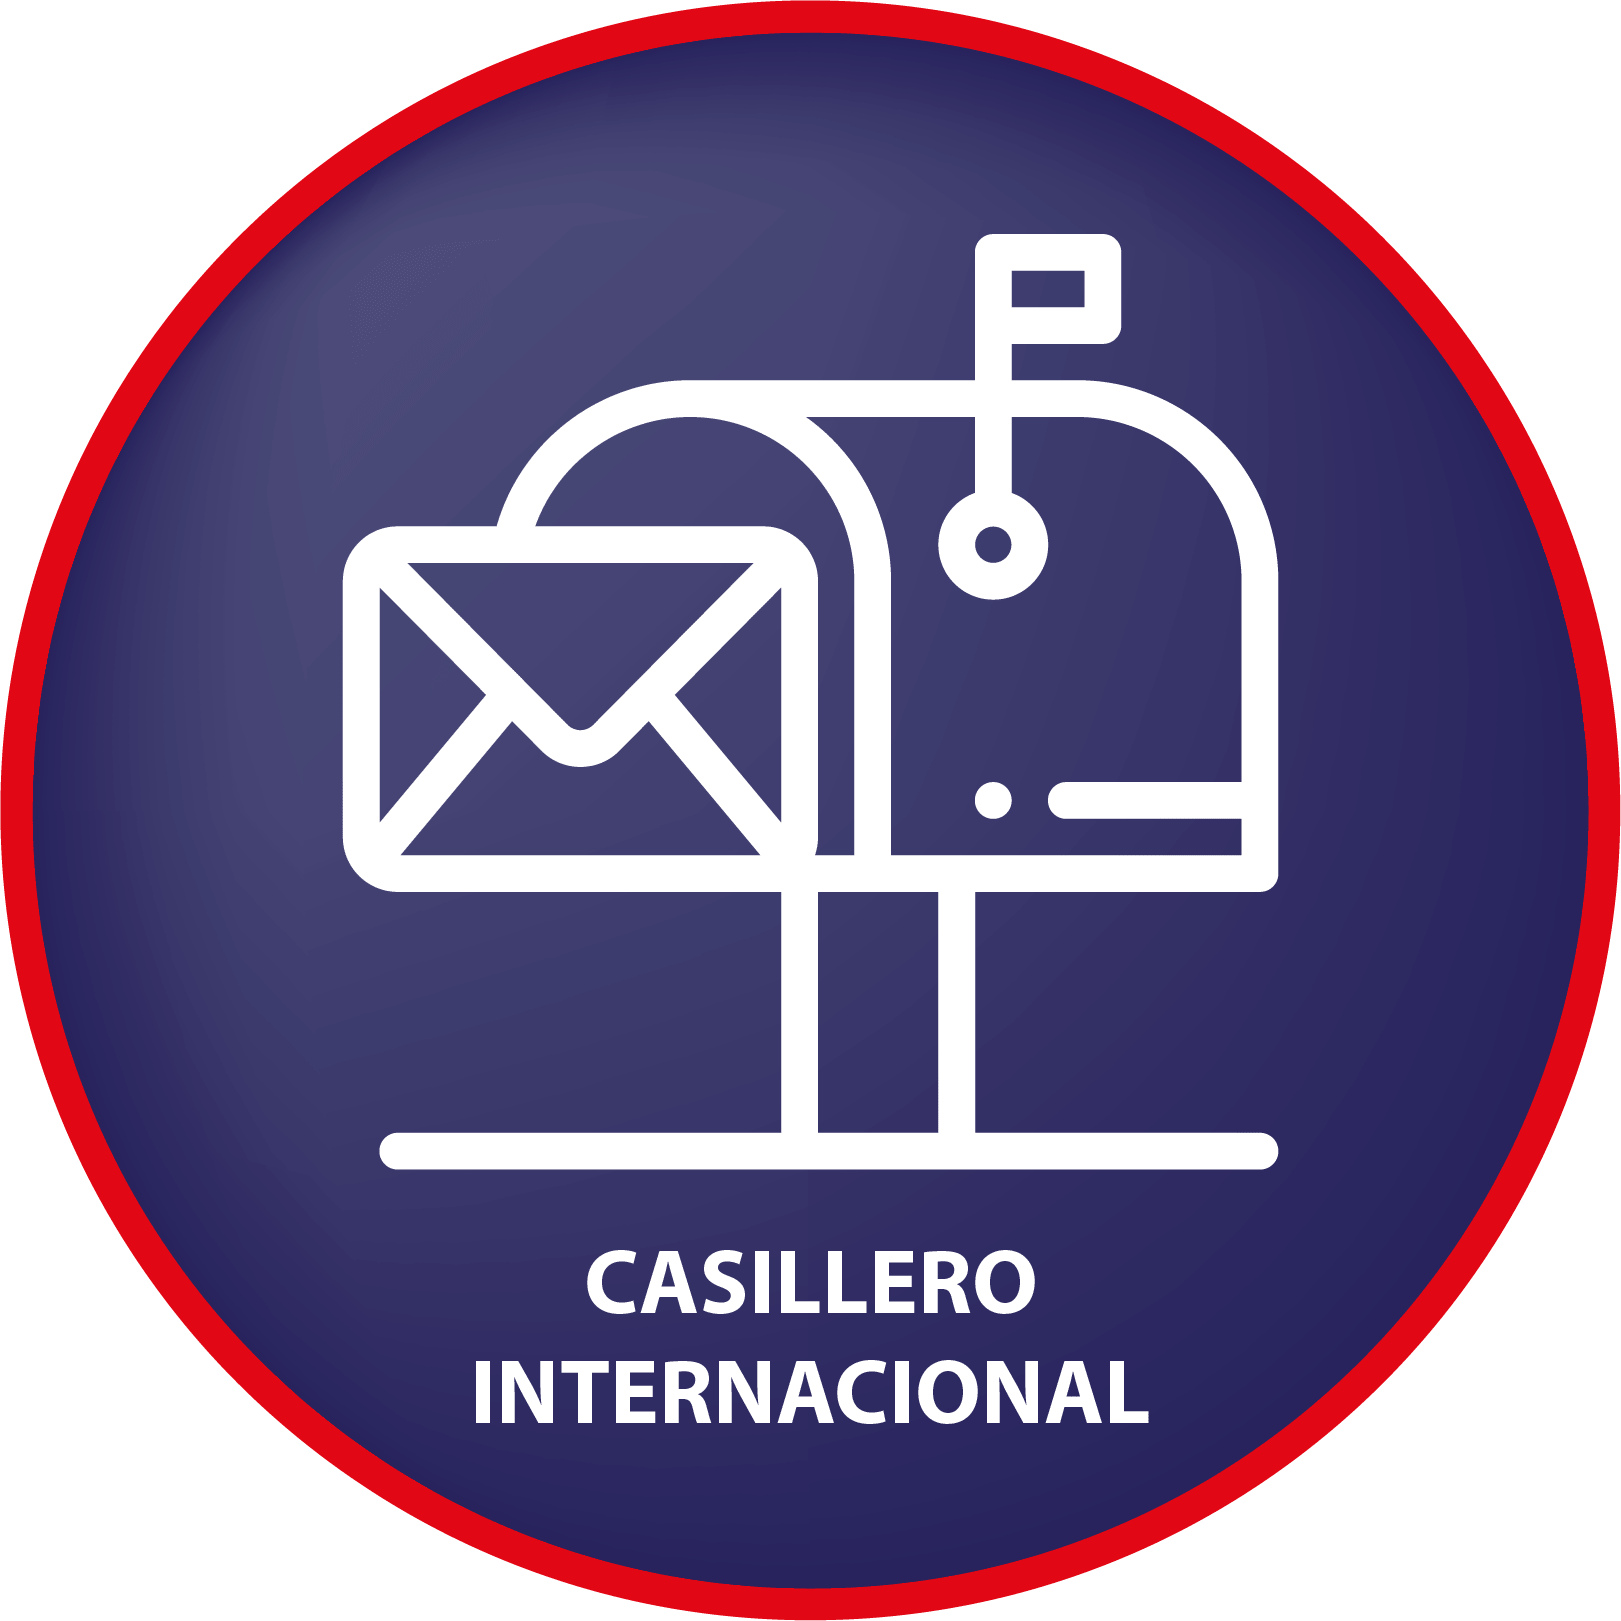 Casillero internacional